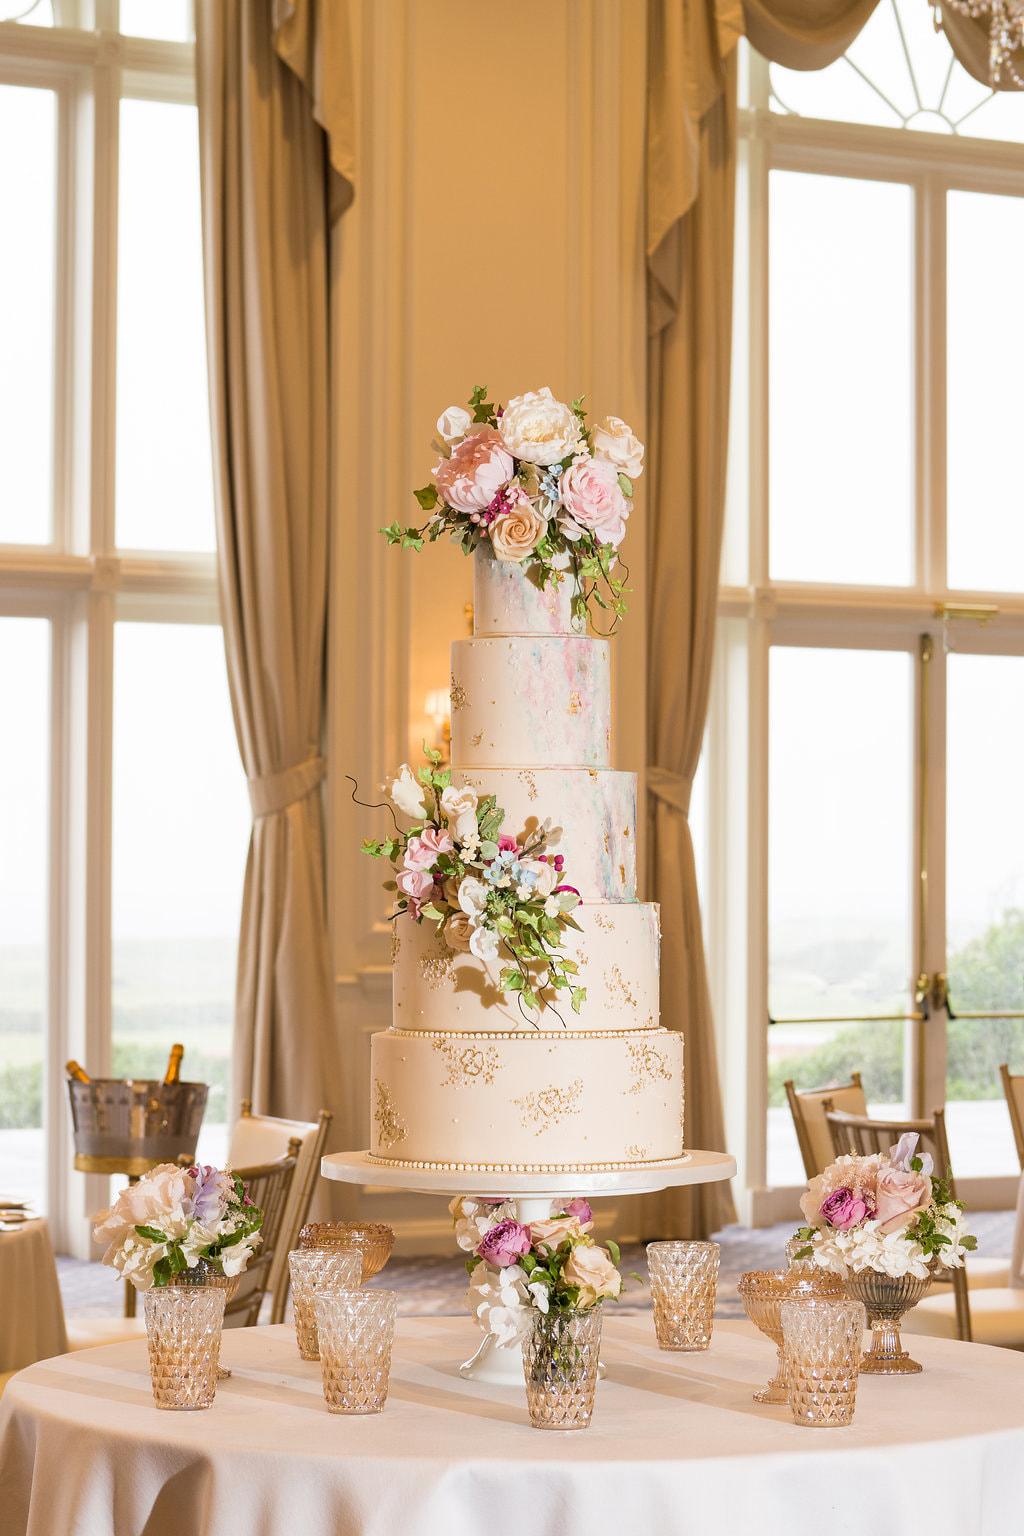 The Turnberry Wedding cake